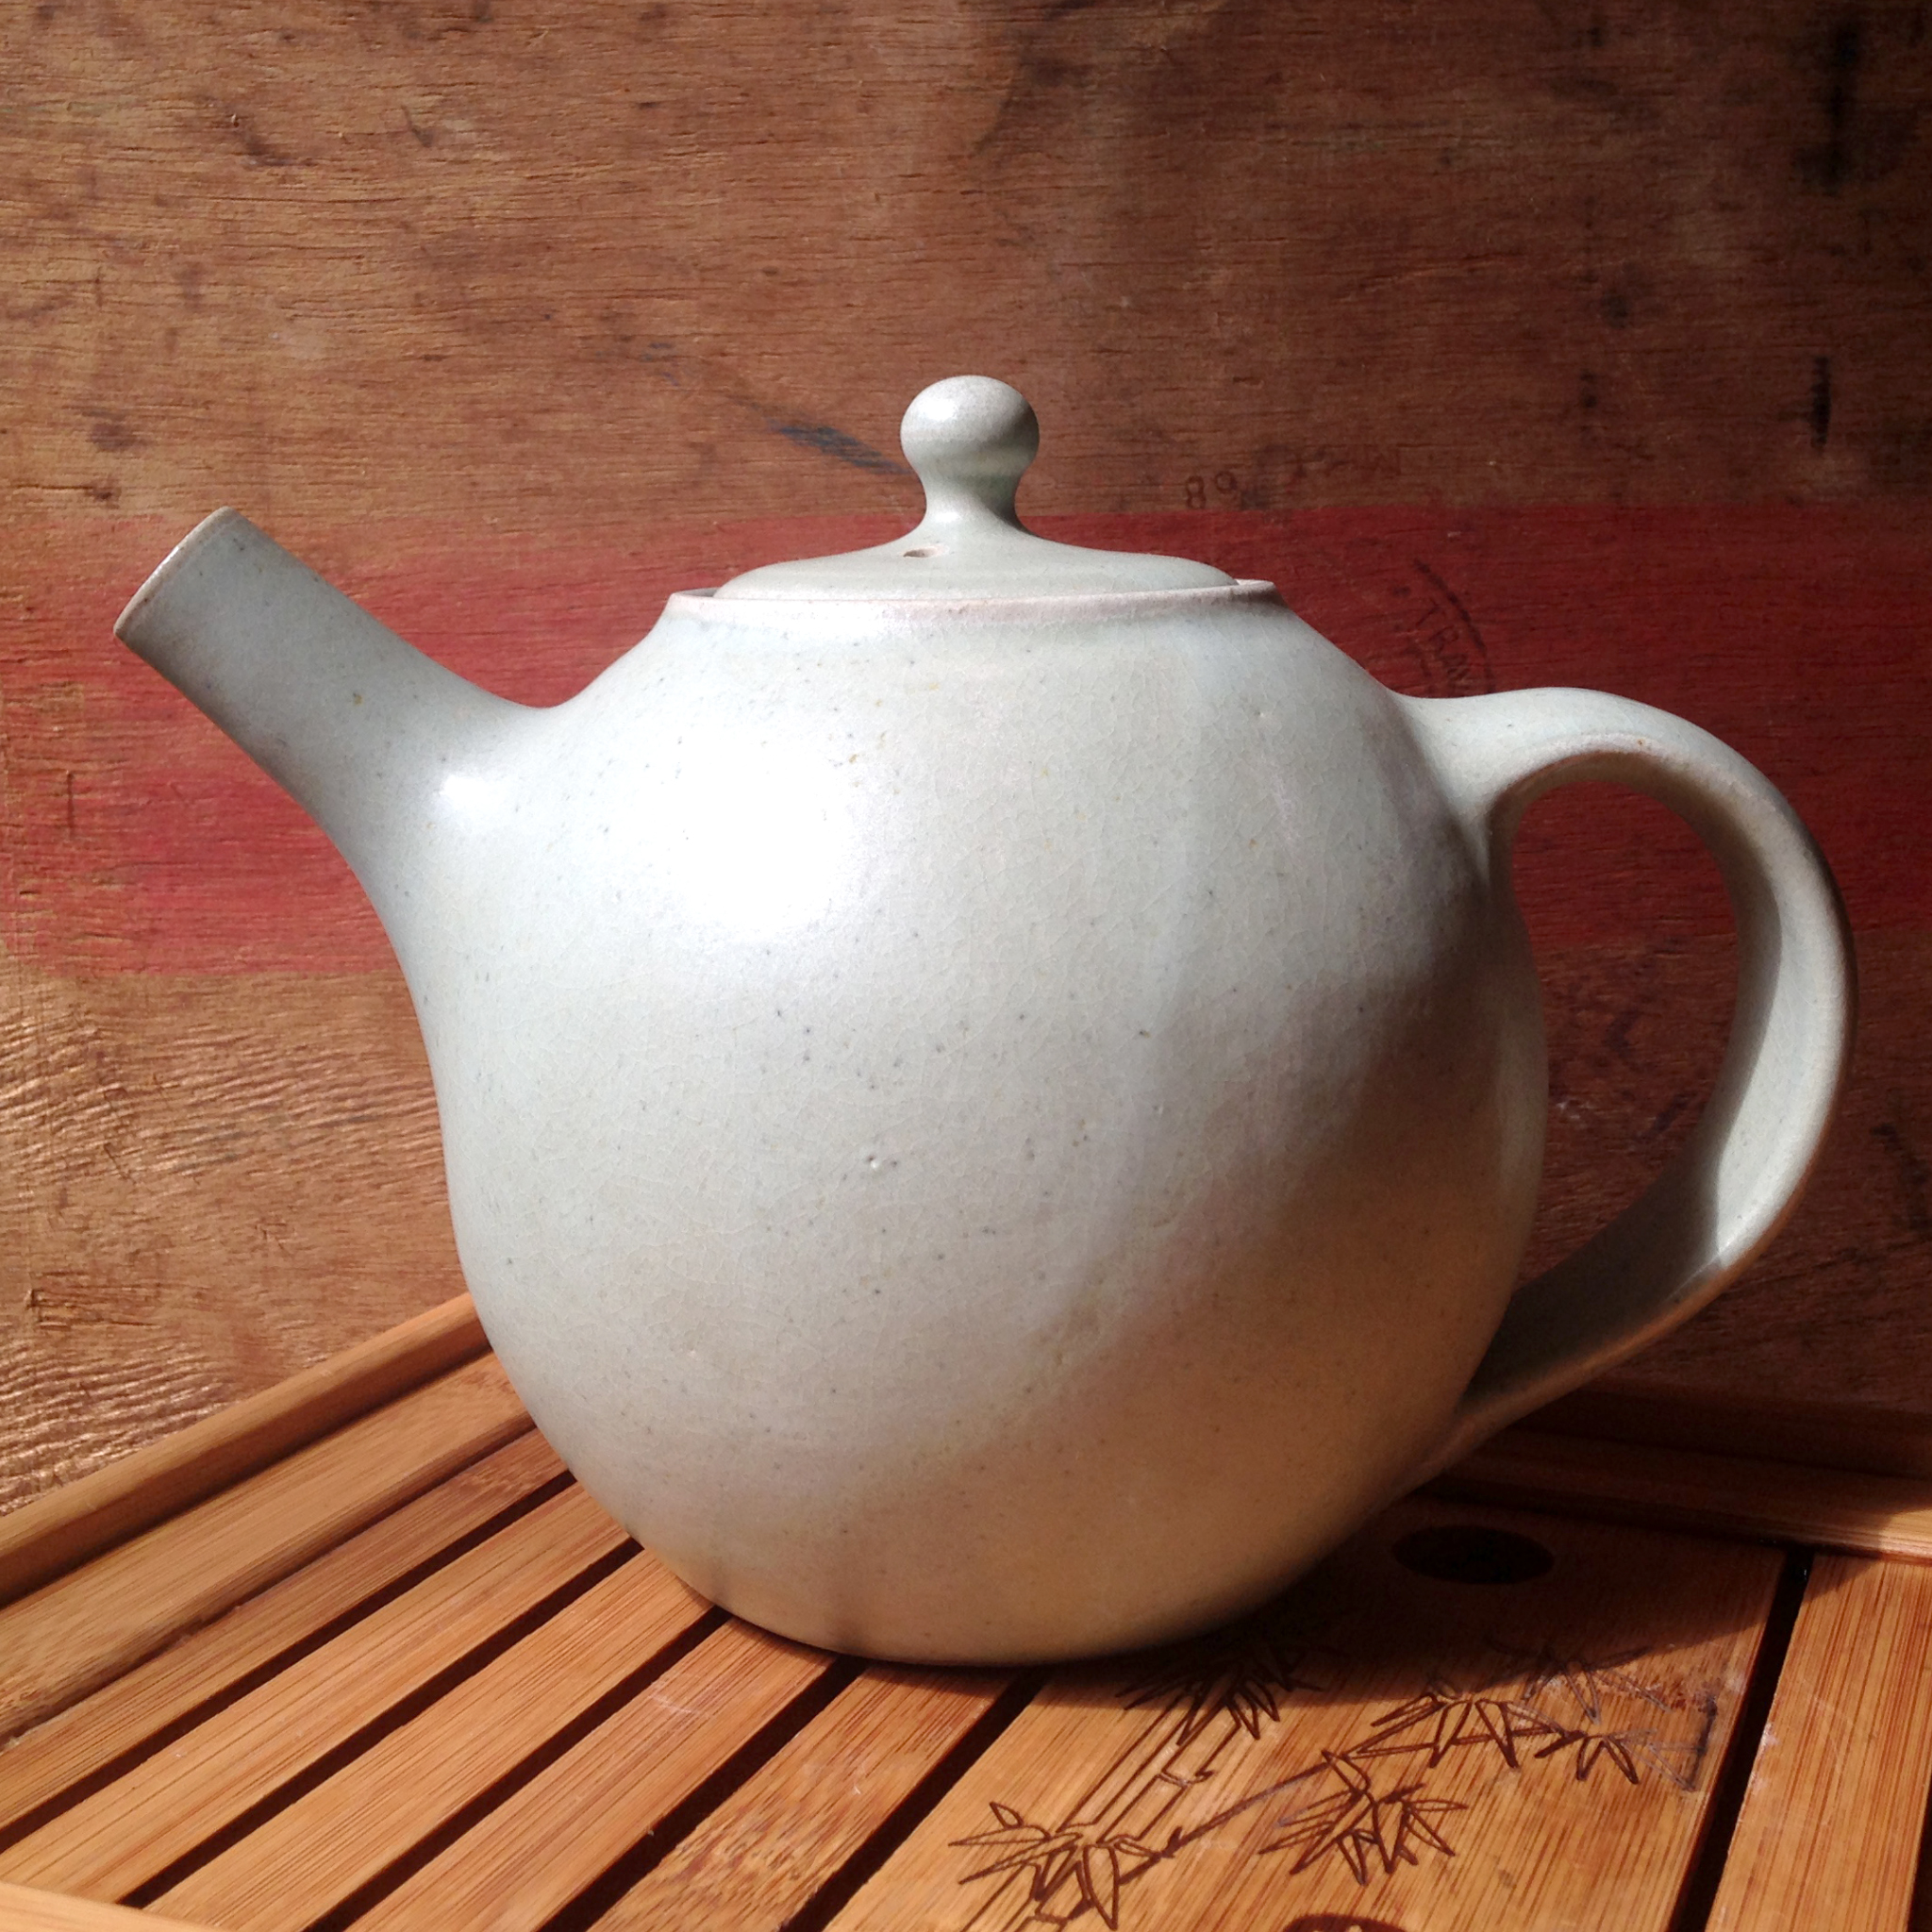 Teapot by Bethan Jones